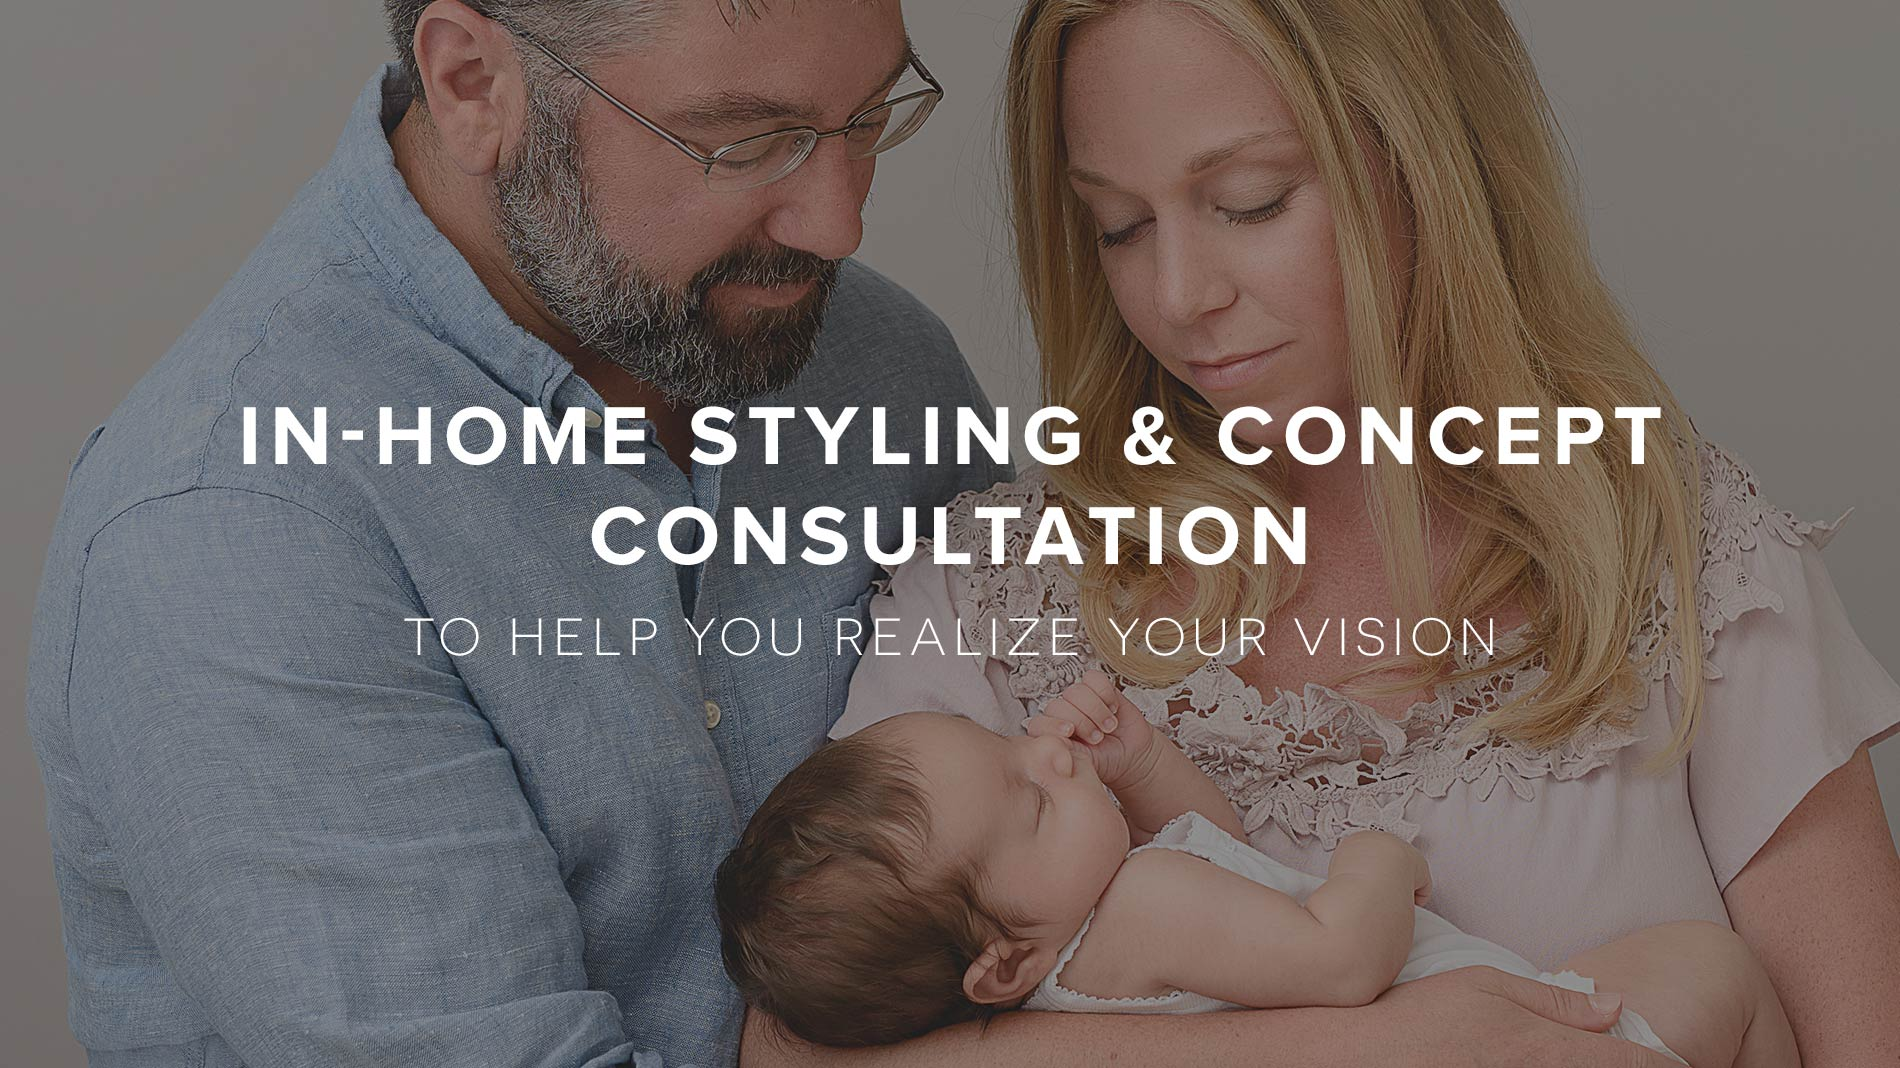 In-home styling and concept consultation to help you realize your vision